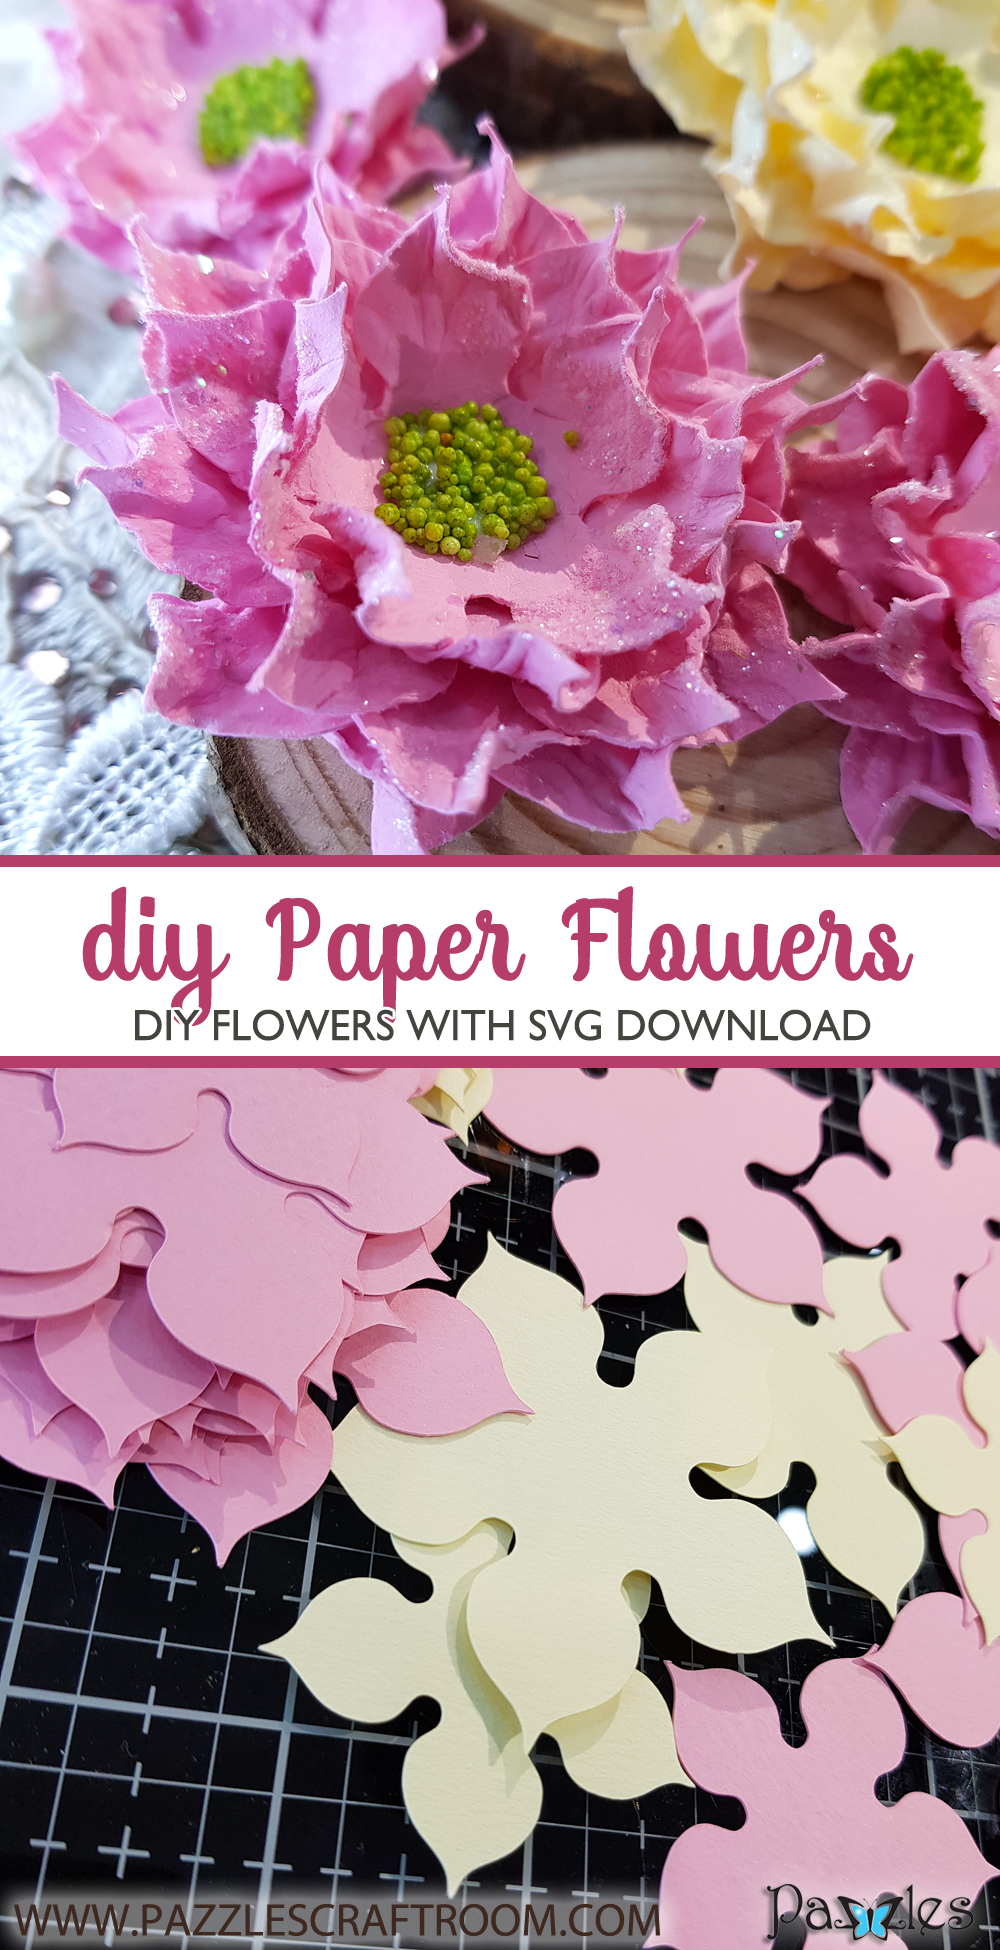 Pazzles DIY Paper Flower Embellishments with instant SVG download. Compatible with all major electronic cutters including Pazzles Inspiration, Cricut, and Silhouette Cameo. Design by Nida Tanweer.